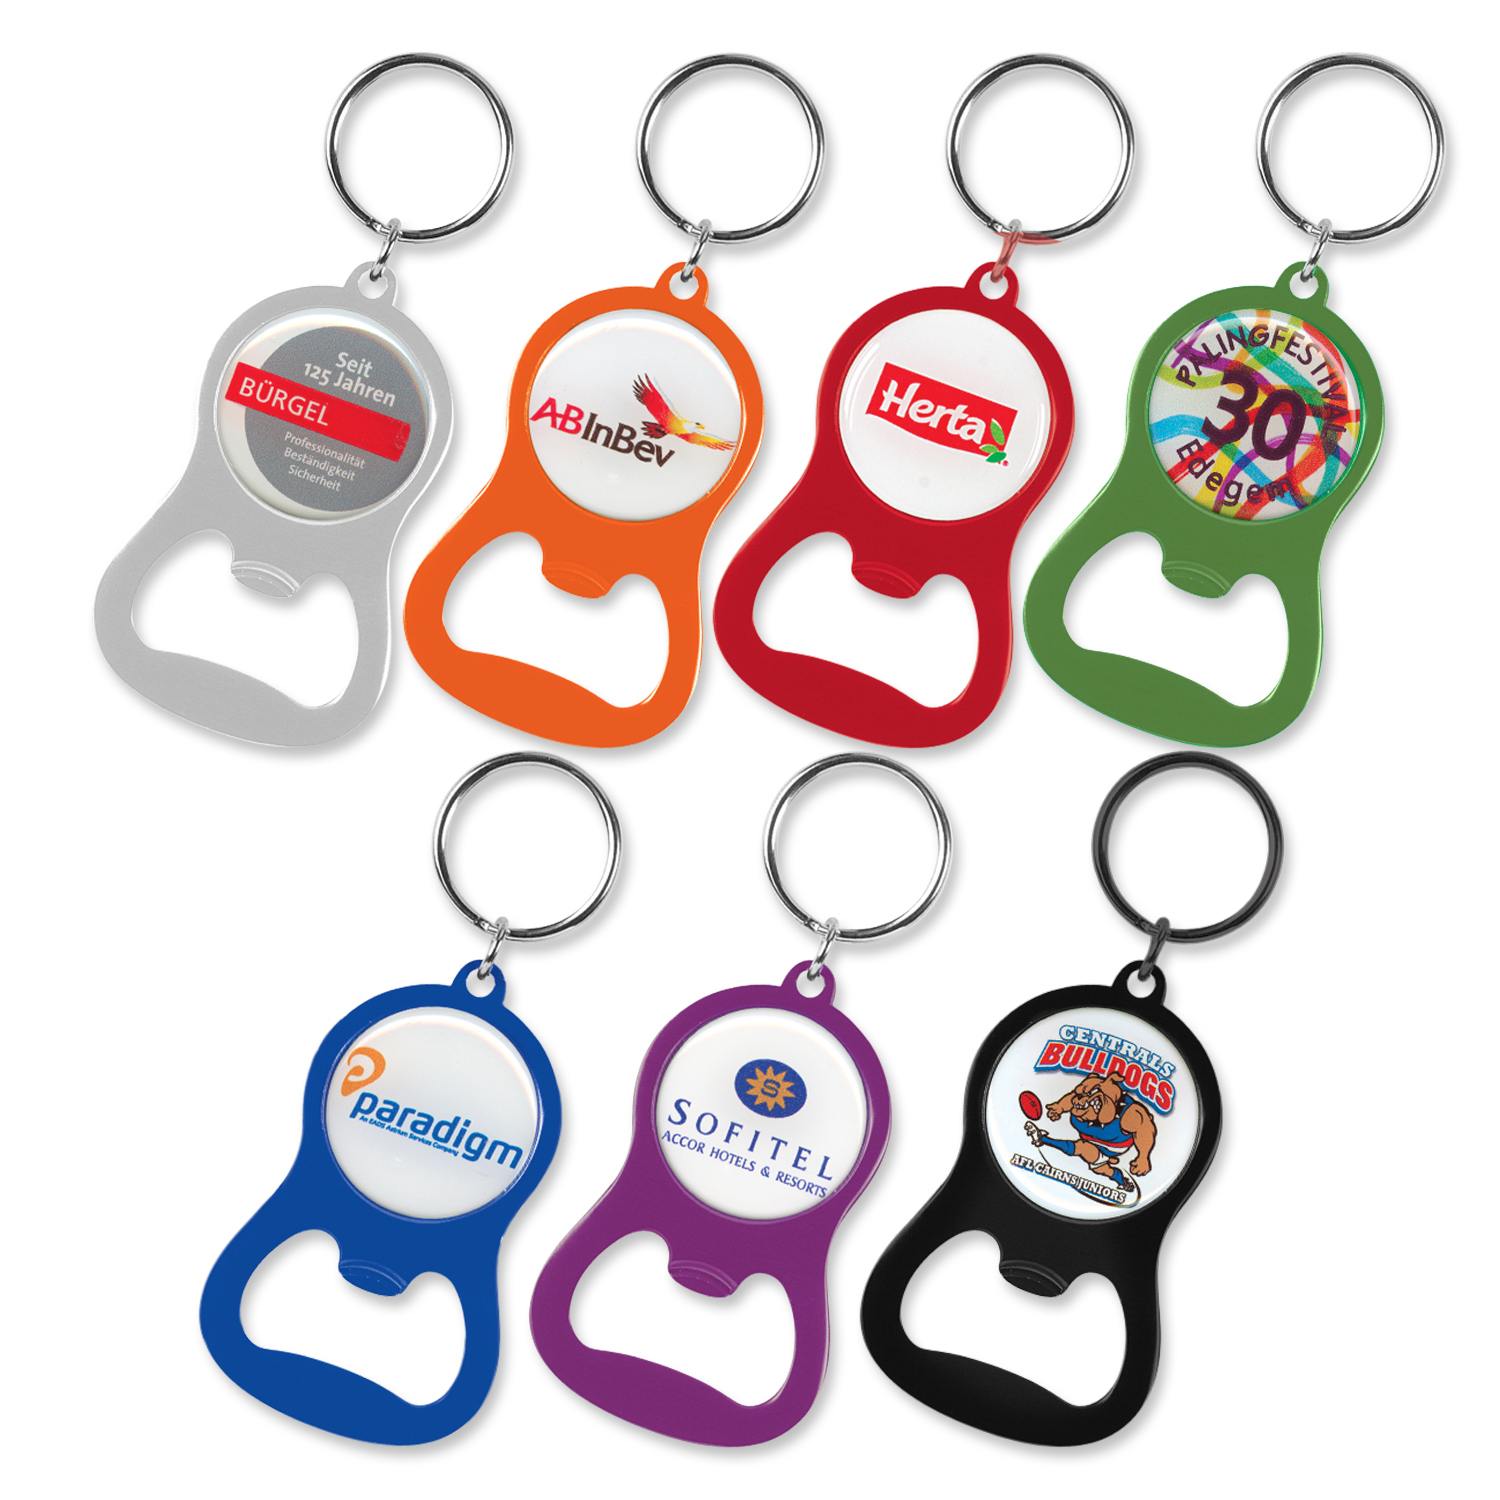 jps marketing new zealand chevron bottle opener key ring. Black Bedroom Furniture Sets. Home Design Ideas